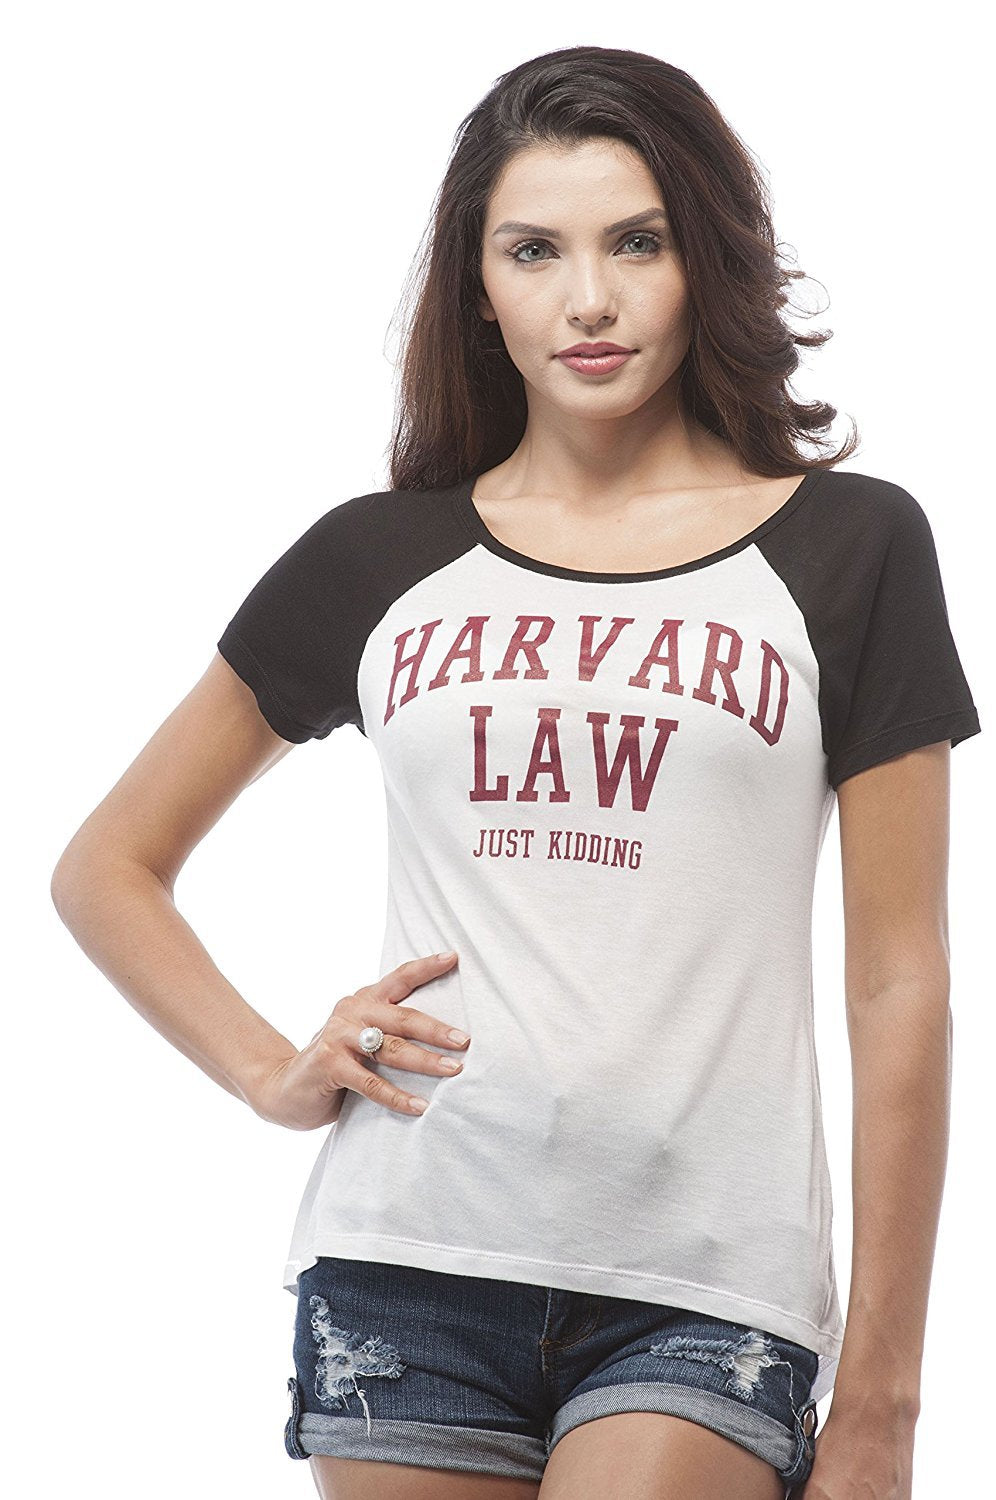 Sleeveless Tank Top Graphic Tees Harvard